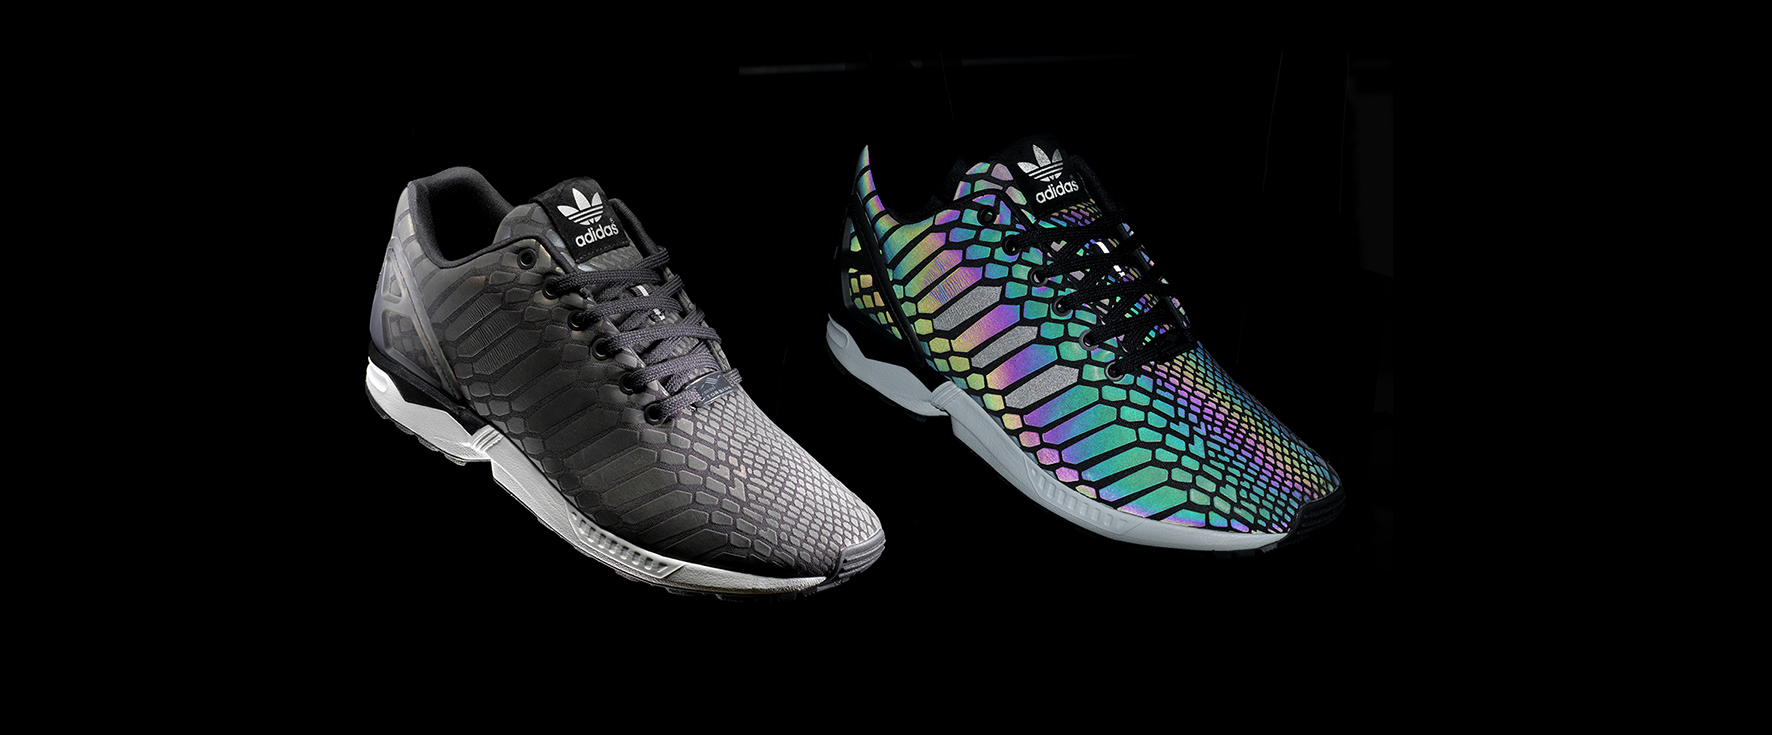 huge discount 5beaa 57b88 FOOT ASYLUM PRESENTS THE ADIDAS ZX FLUX XENO - UK RELEASE - Trapped Magazine